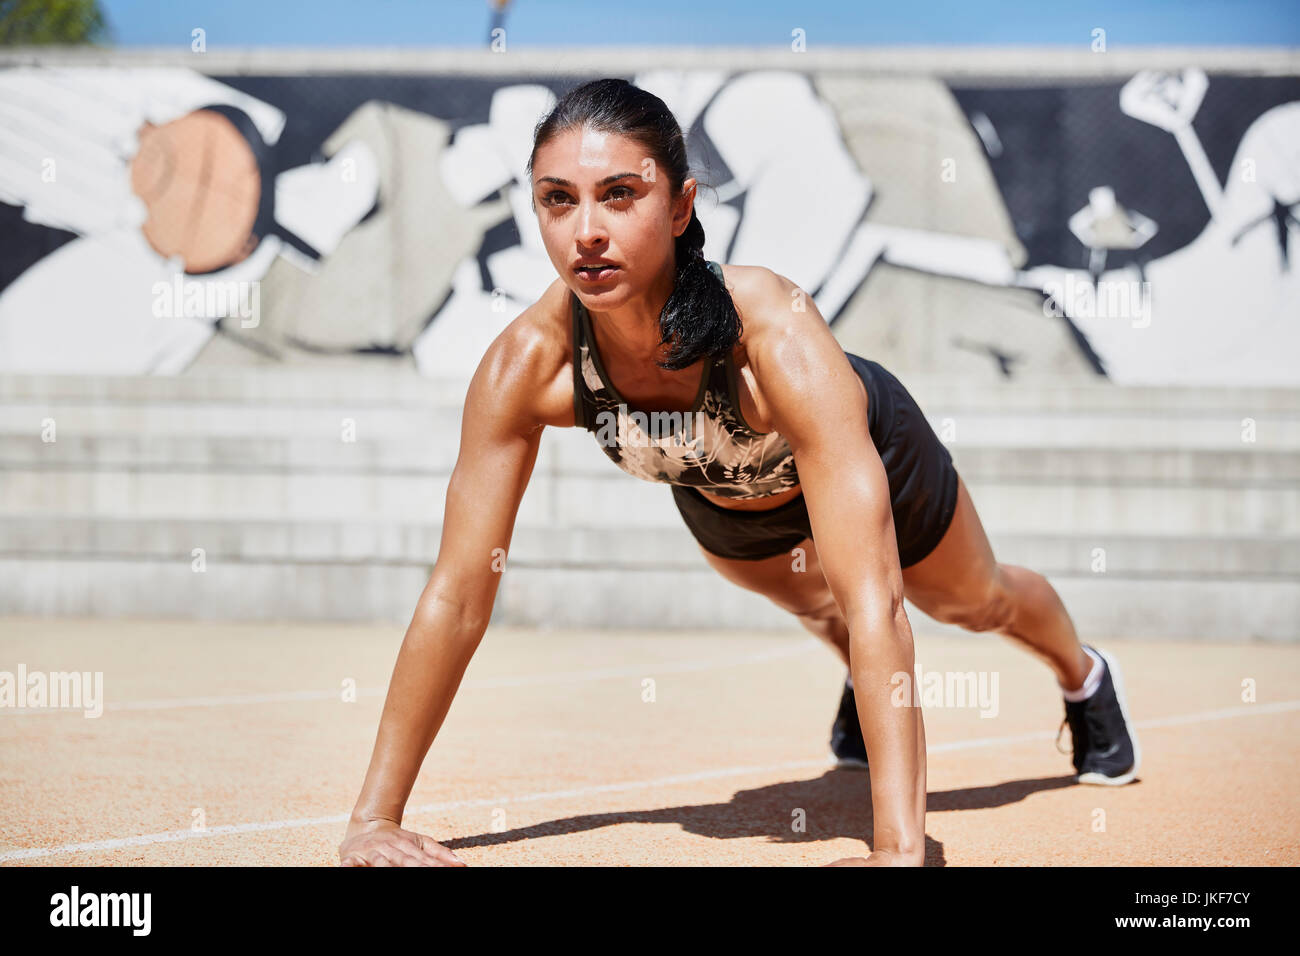 Monter woman doing pushups outdoors Photo Stock